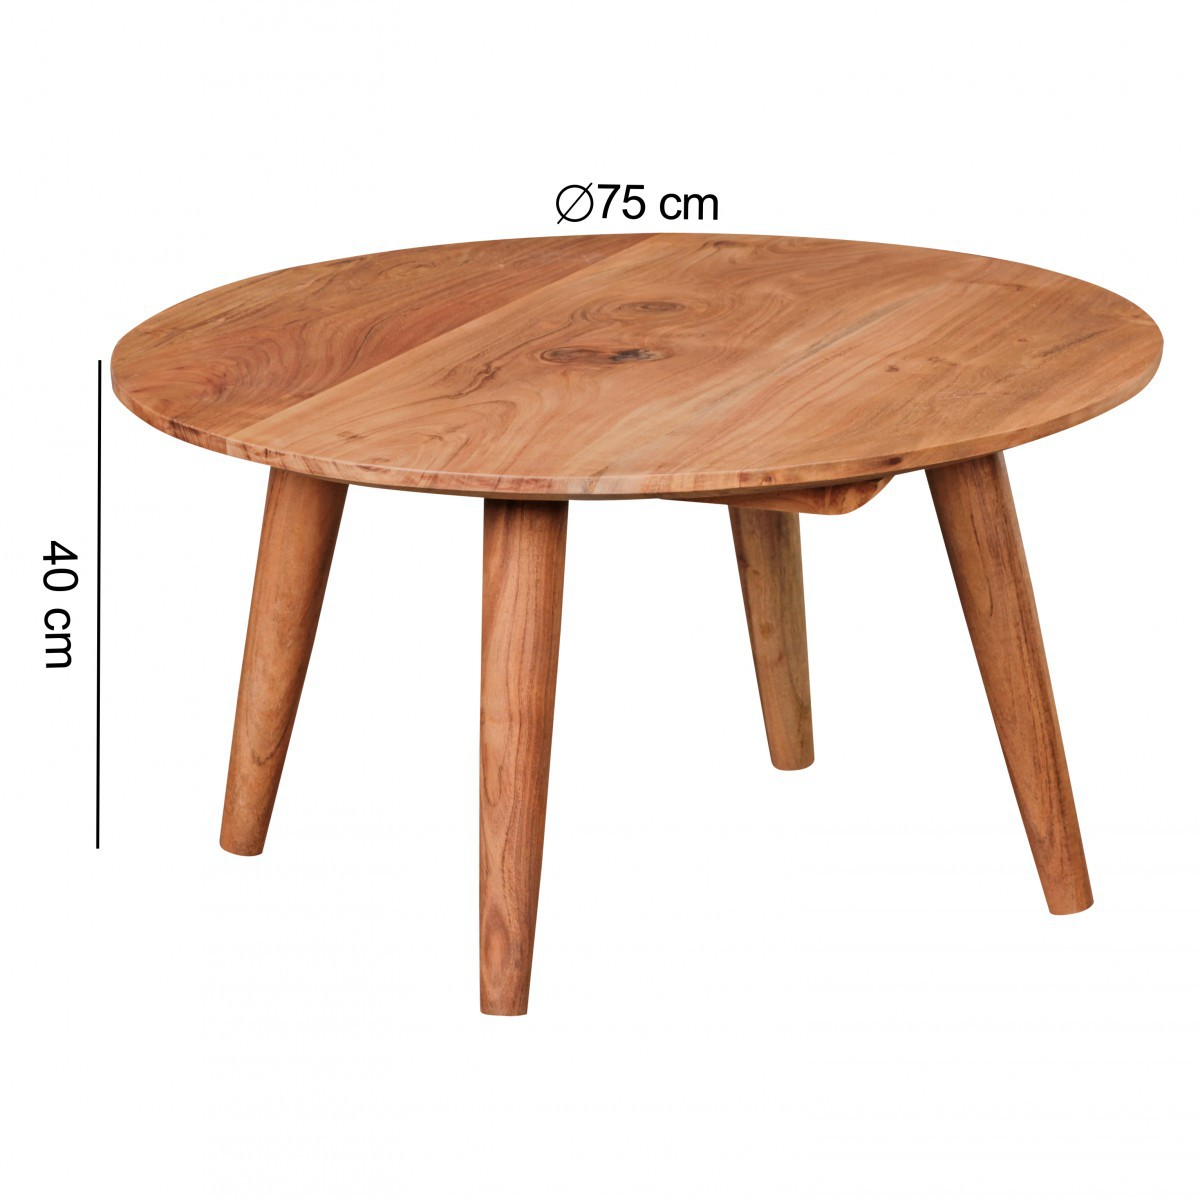 Finebuy table basse en bois massif acacia table basse ronde 75 x 40 cm ferme - Table basse ronde relevable ...